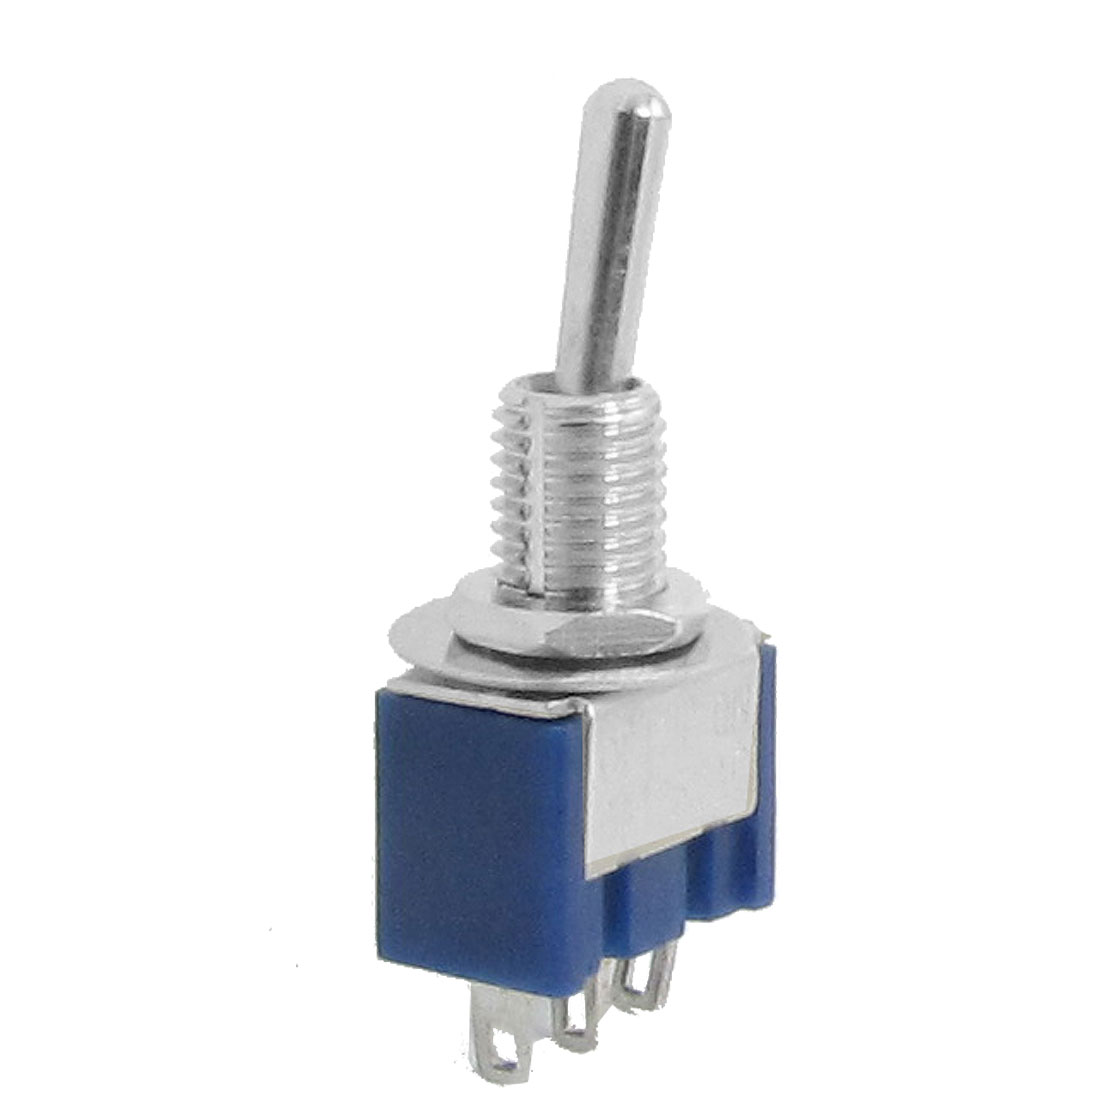 AC 125V 6A SPDT 3 Terminal On/On 2 Position Miniature Toggle Switch Blue